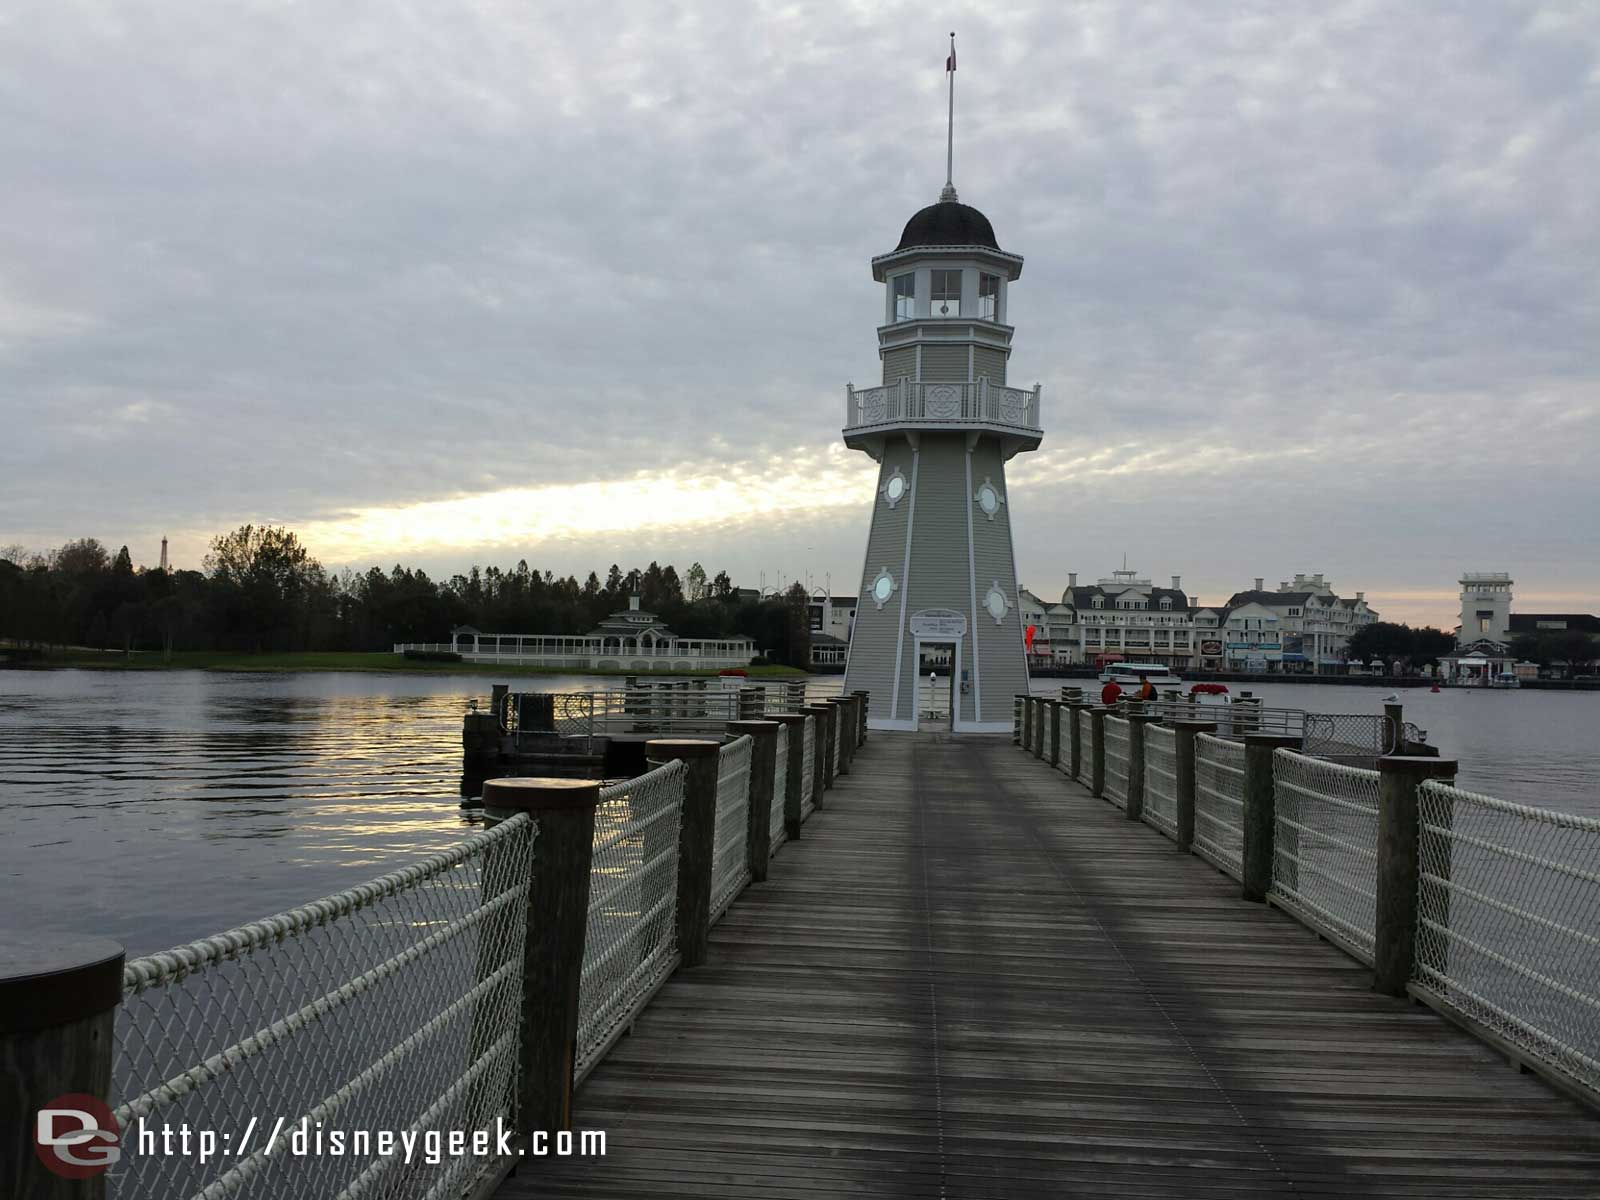 A cool and overcast morning as I headed out to catch a Friendship launch at the Yacht Club pier.